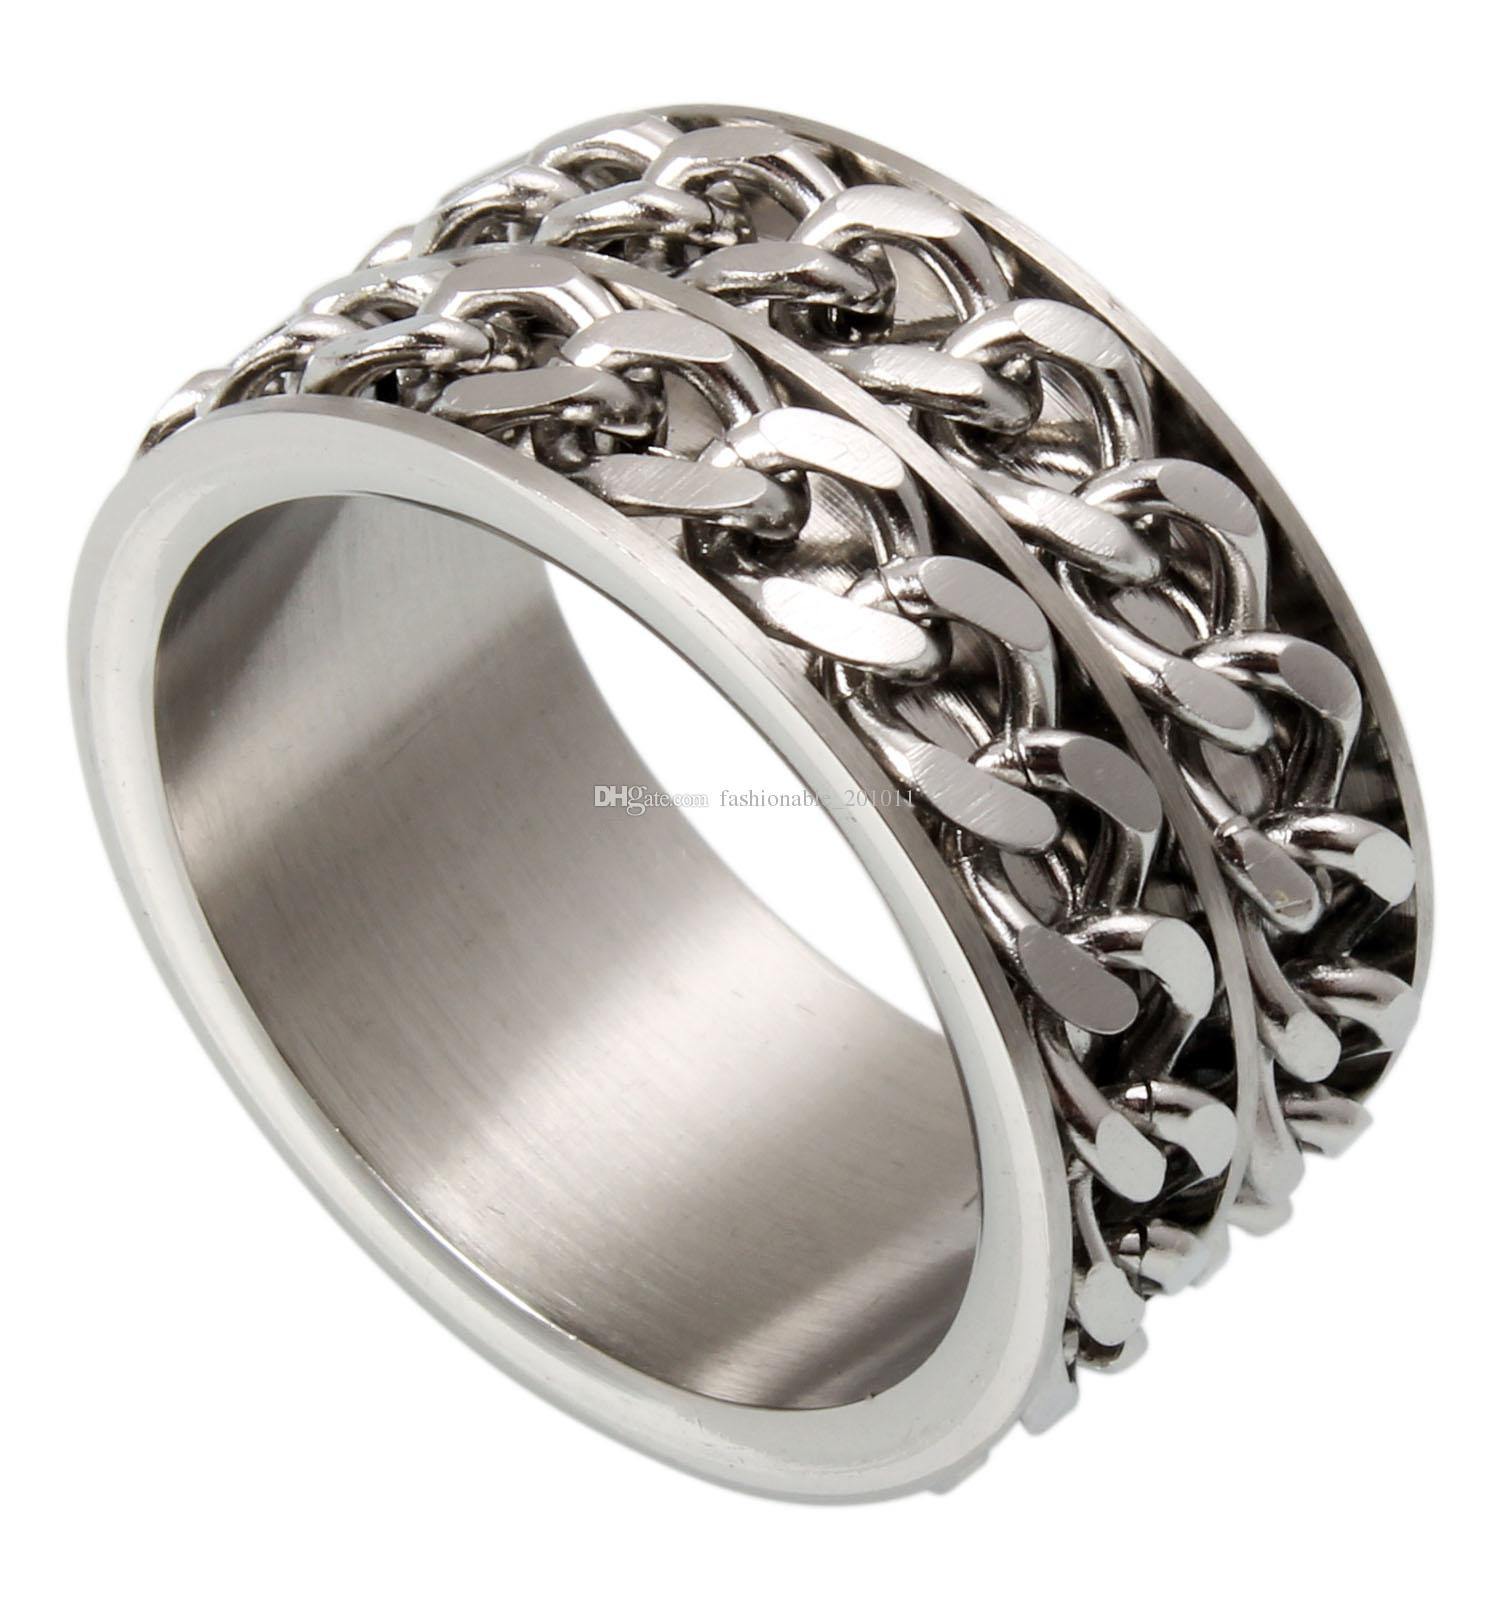 12mm Stainless Steel 2 Rows Rolling Chain Link Spinner Ring Sizes 7.75 to 13.9